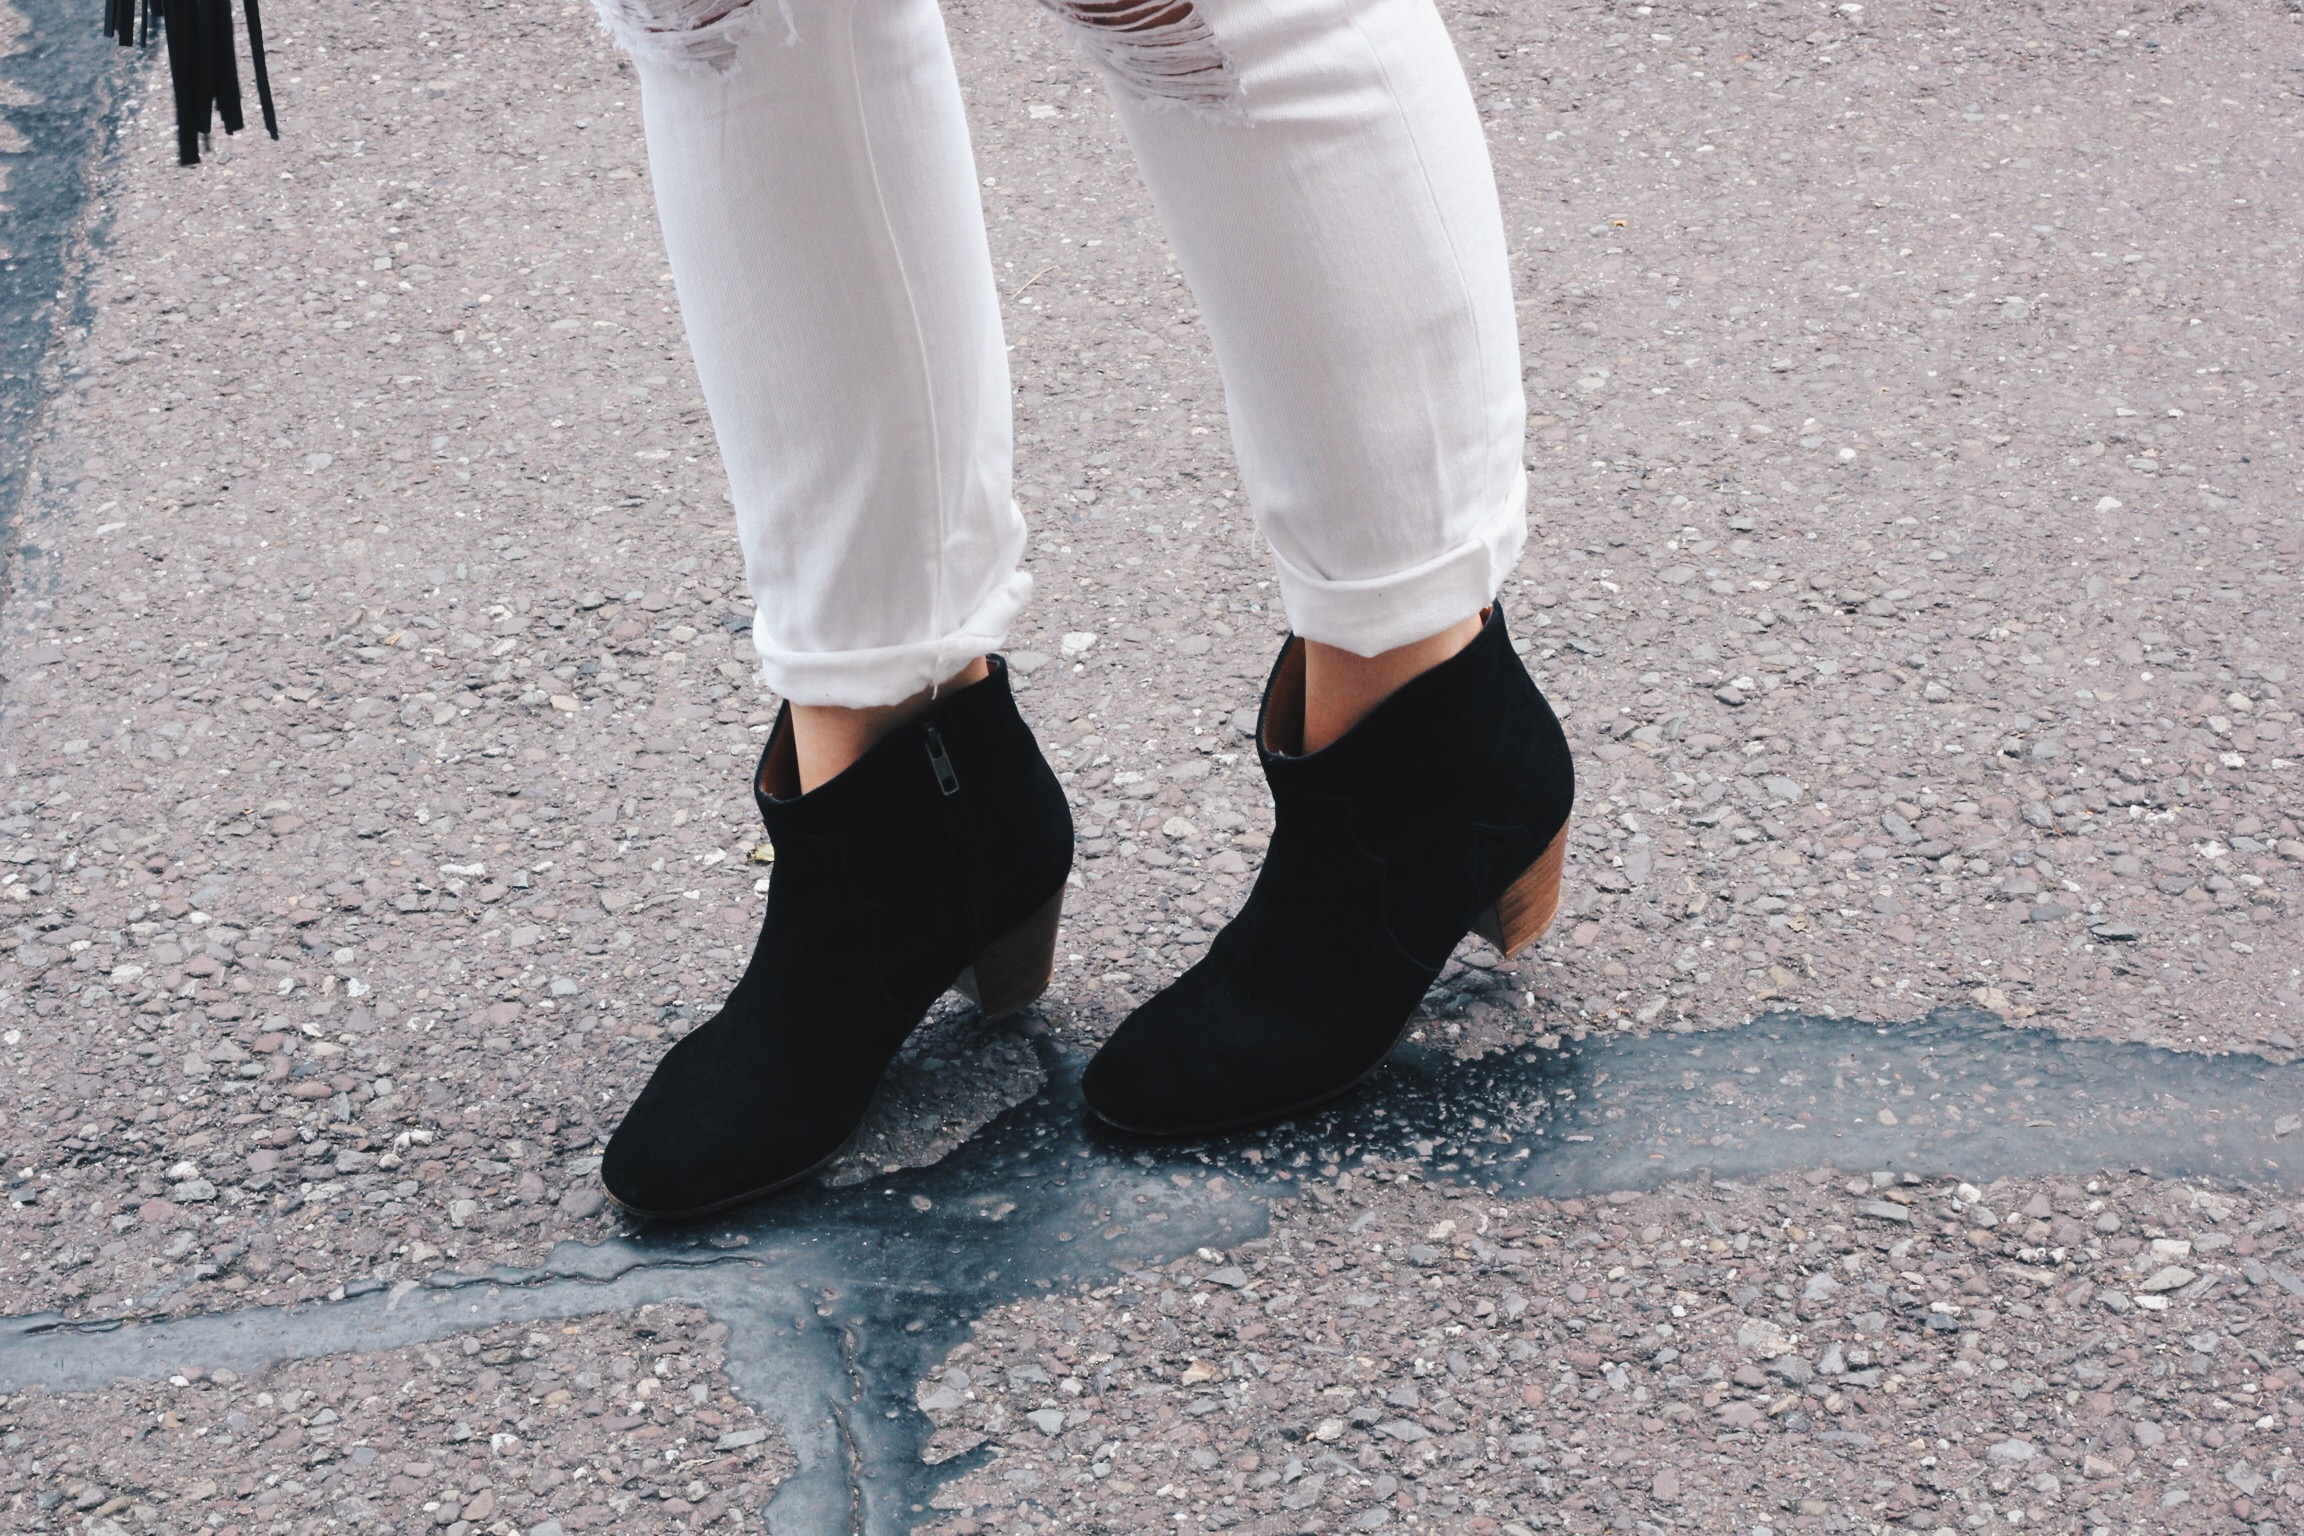 isabelmarant,etoile,boots,dicker,outfit,ireland,blogger,cork,style,suede,black